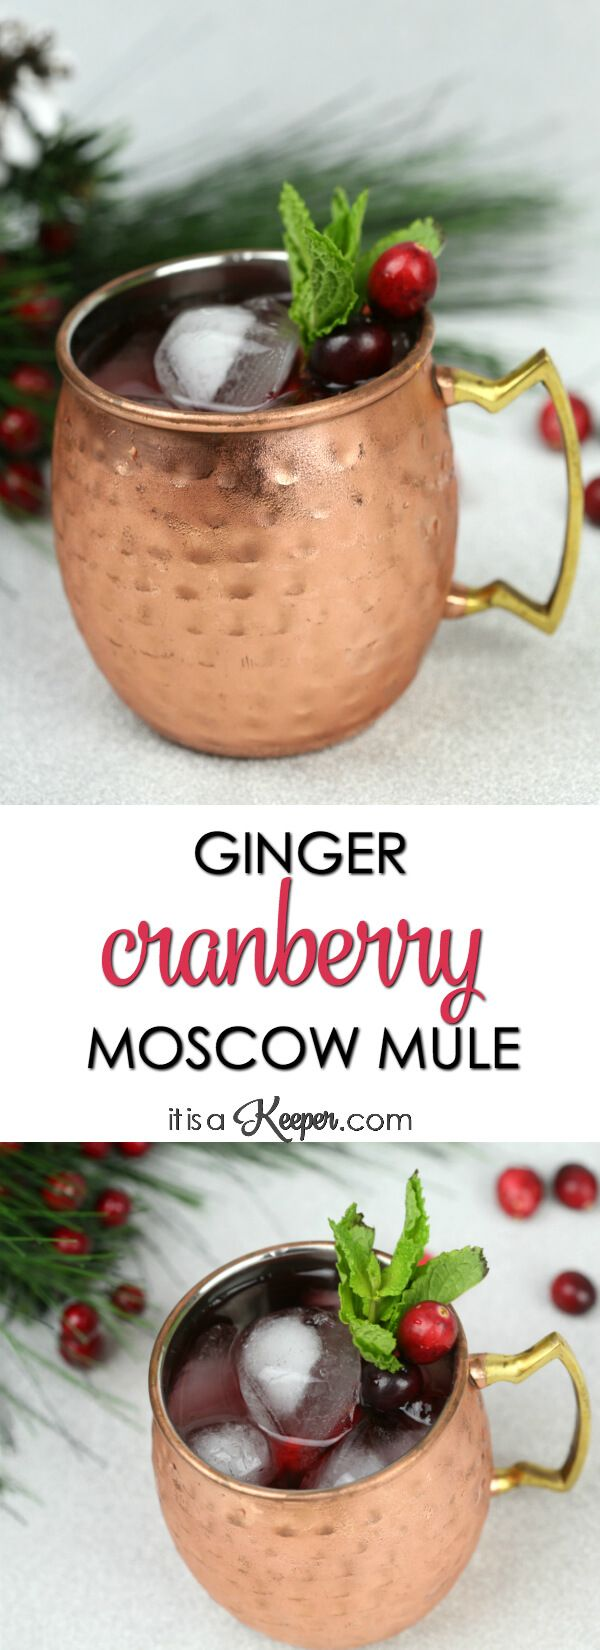 Ginger Cranberry Moscow Mule Cocktail - this festive holiday Moscow Mule has a cranberry twist and is one of my favorite simple cocktail recipes